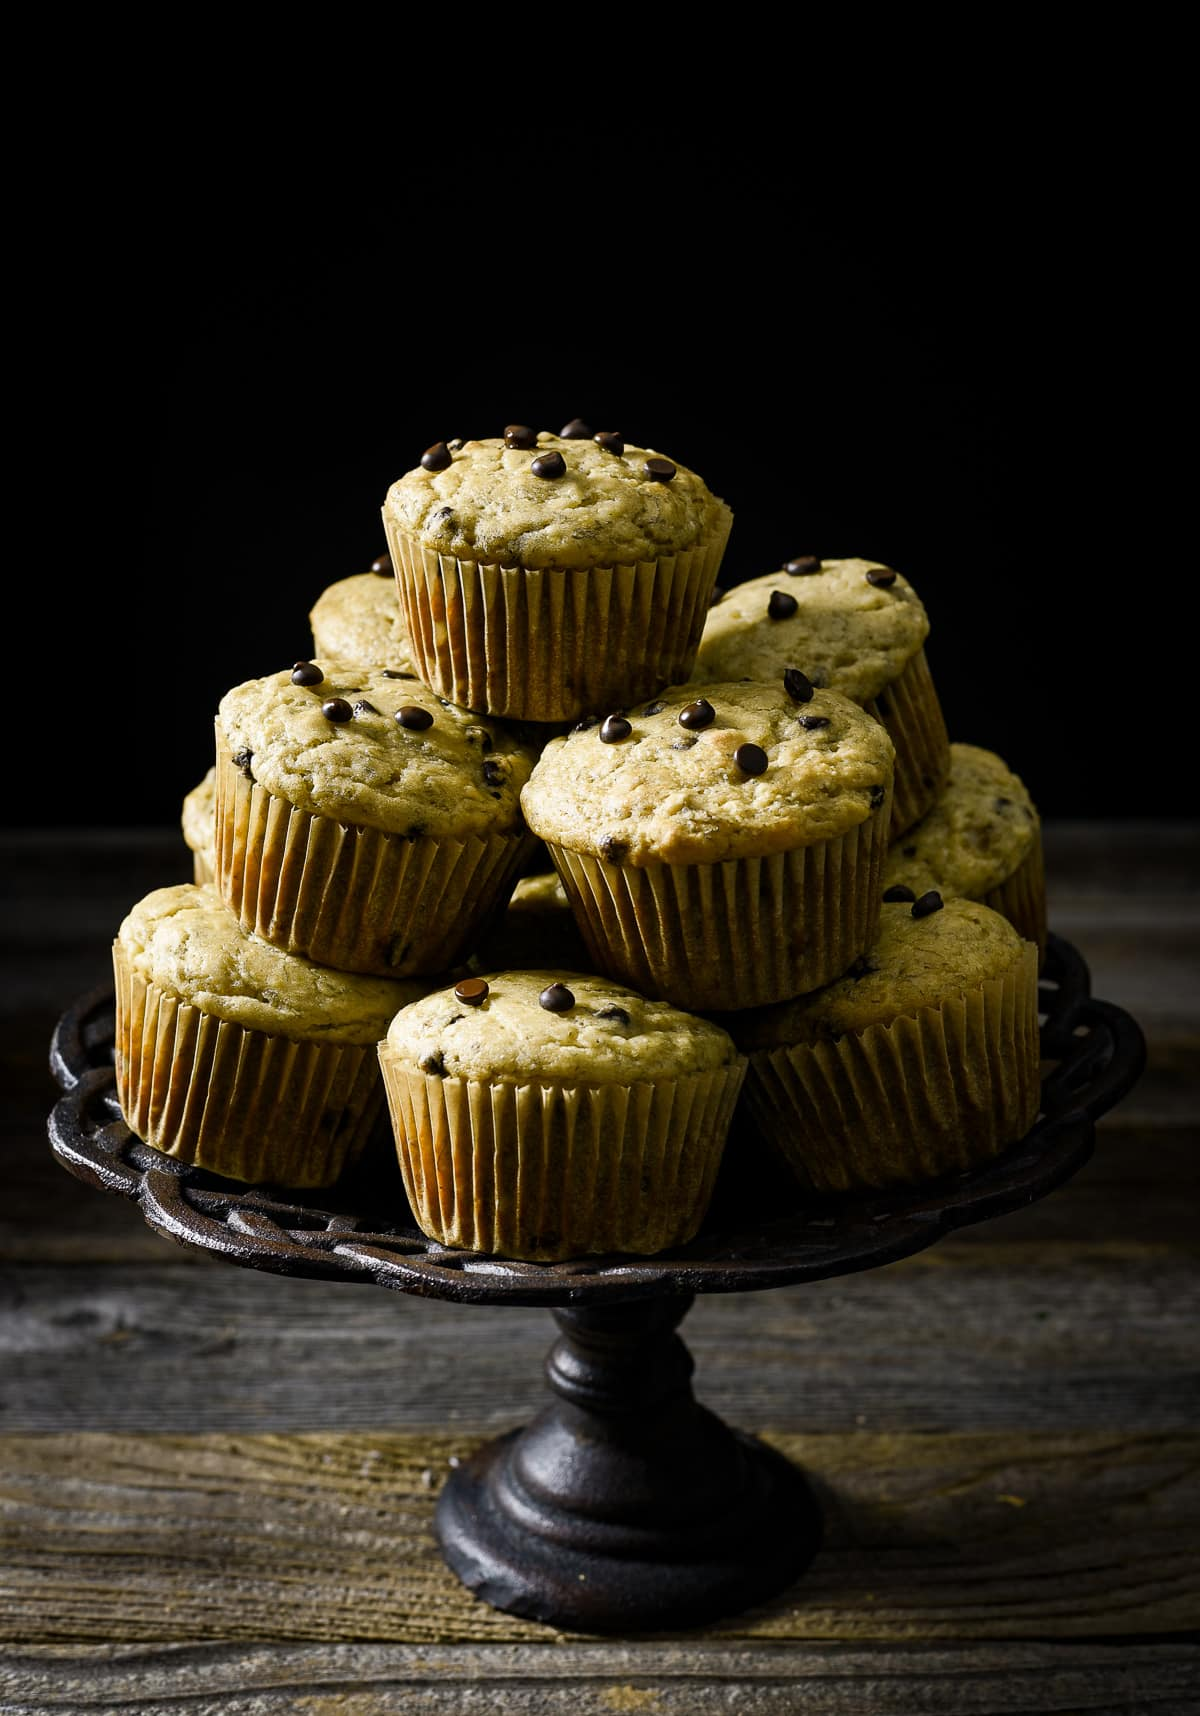 Healthy banana muffins stacked on cake stand.